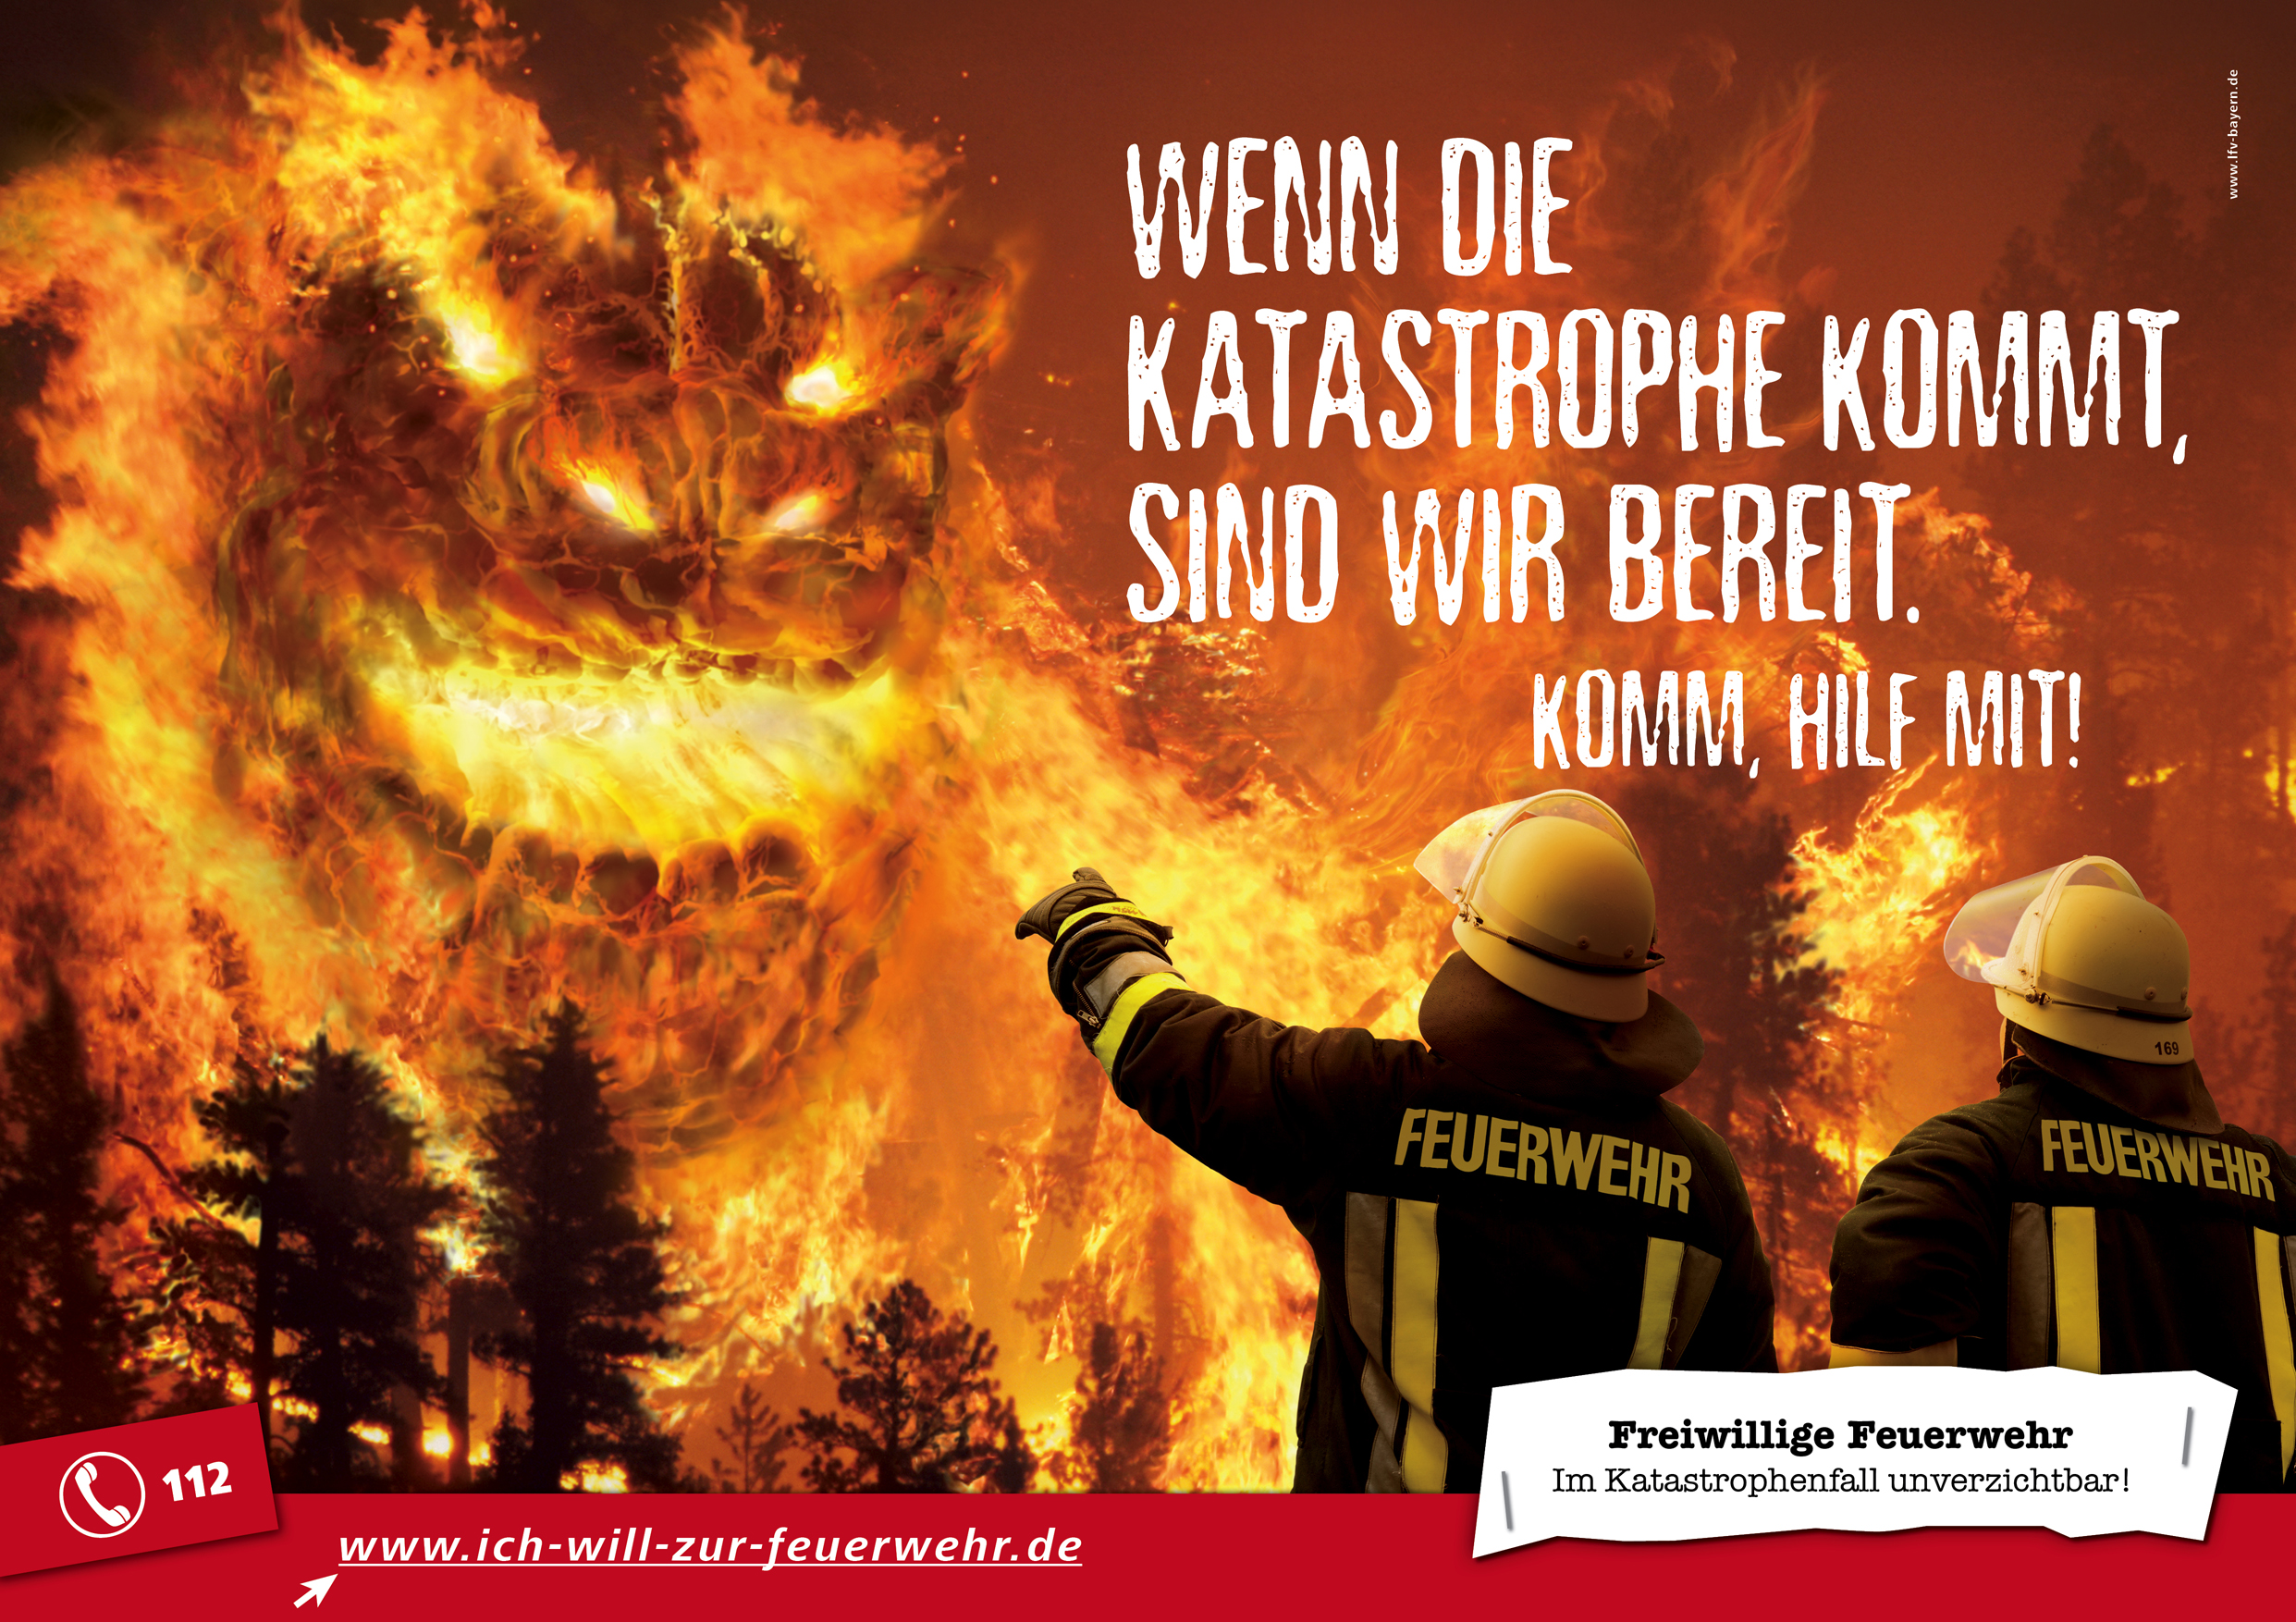 ks kampagne poster a1quer feuer monster rz 150dpi